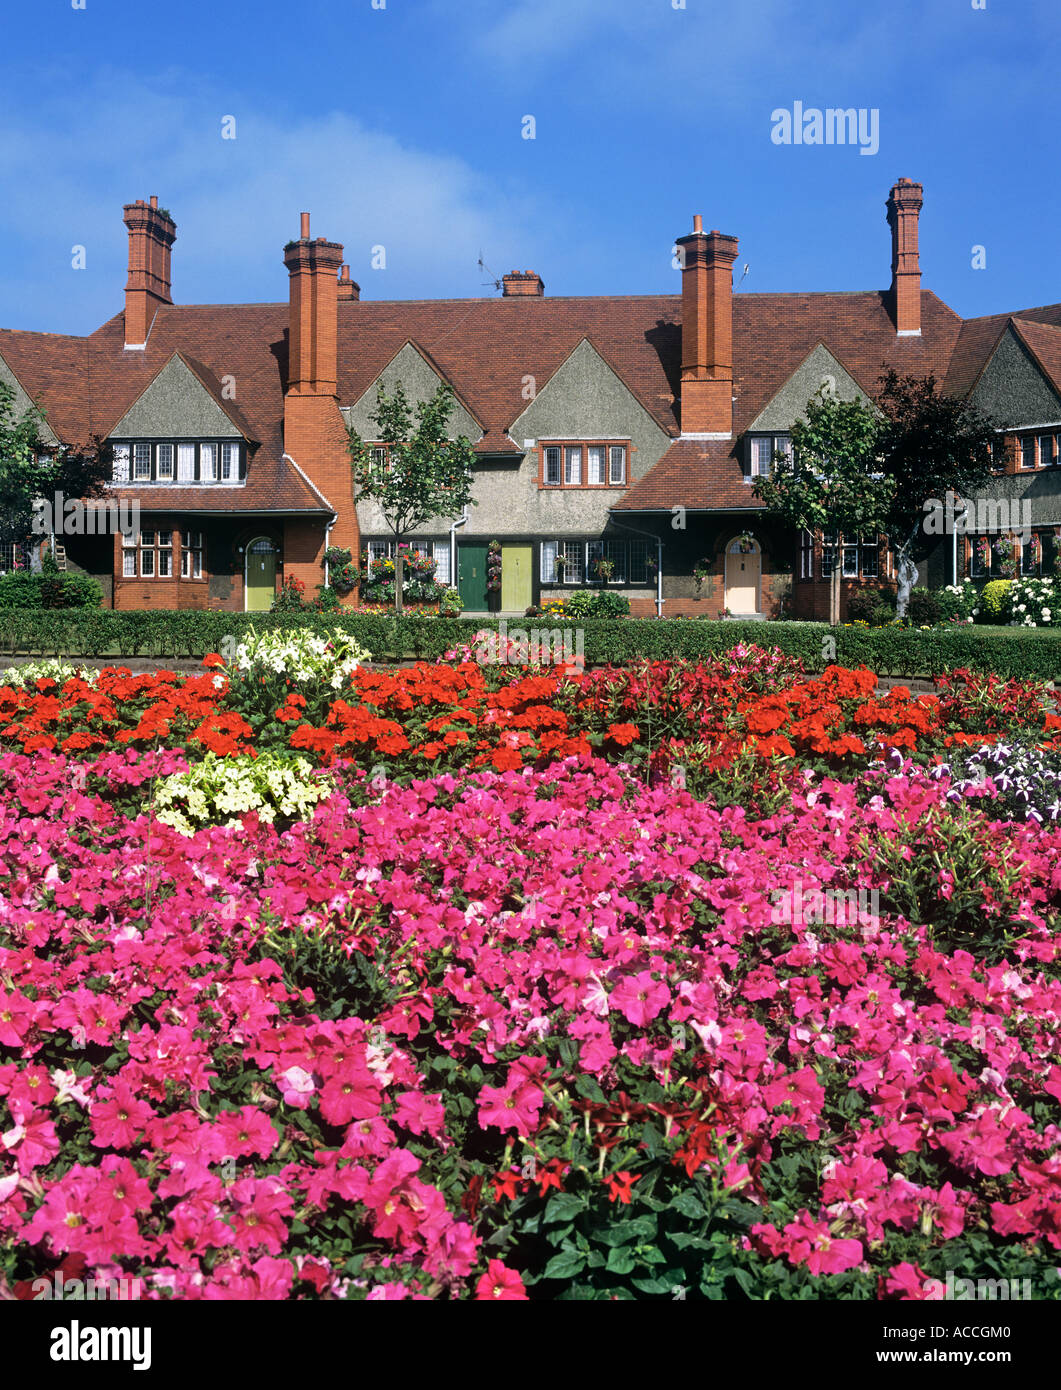 A flower-bedecked traffic roundabout in Port Sunlight, Cheshire, with Arts and Crafts-style housing behind. - Stock Image